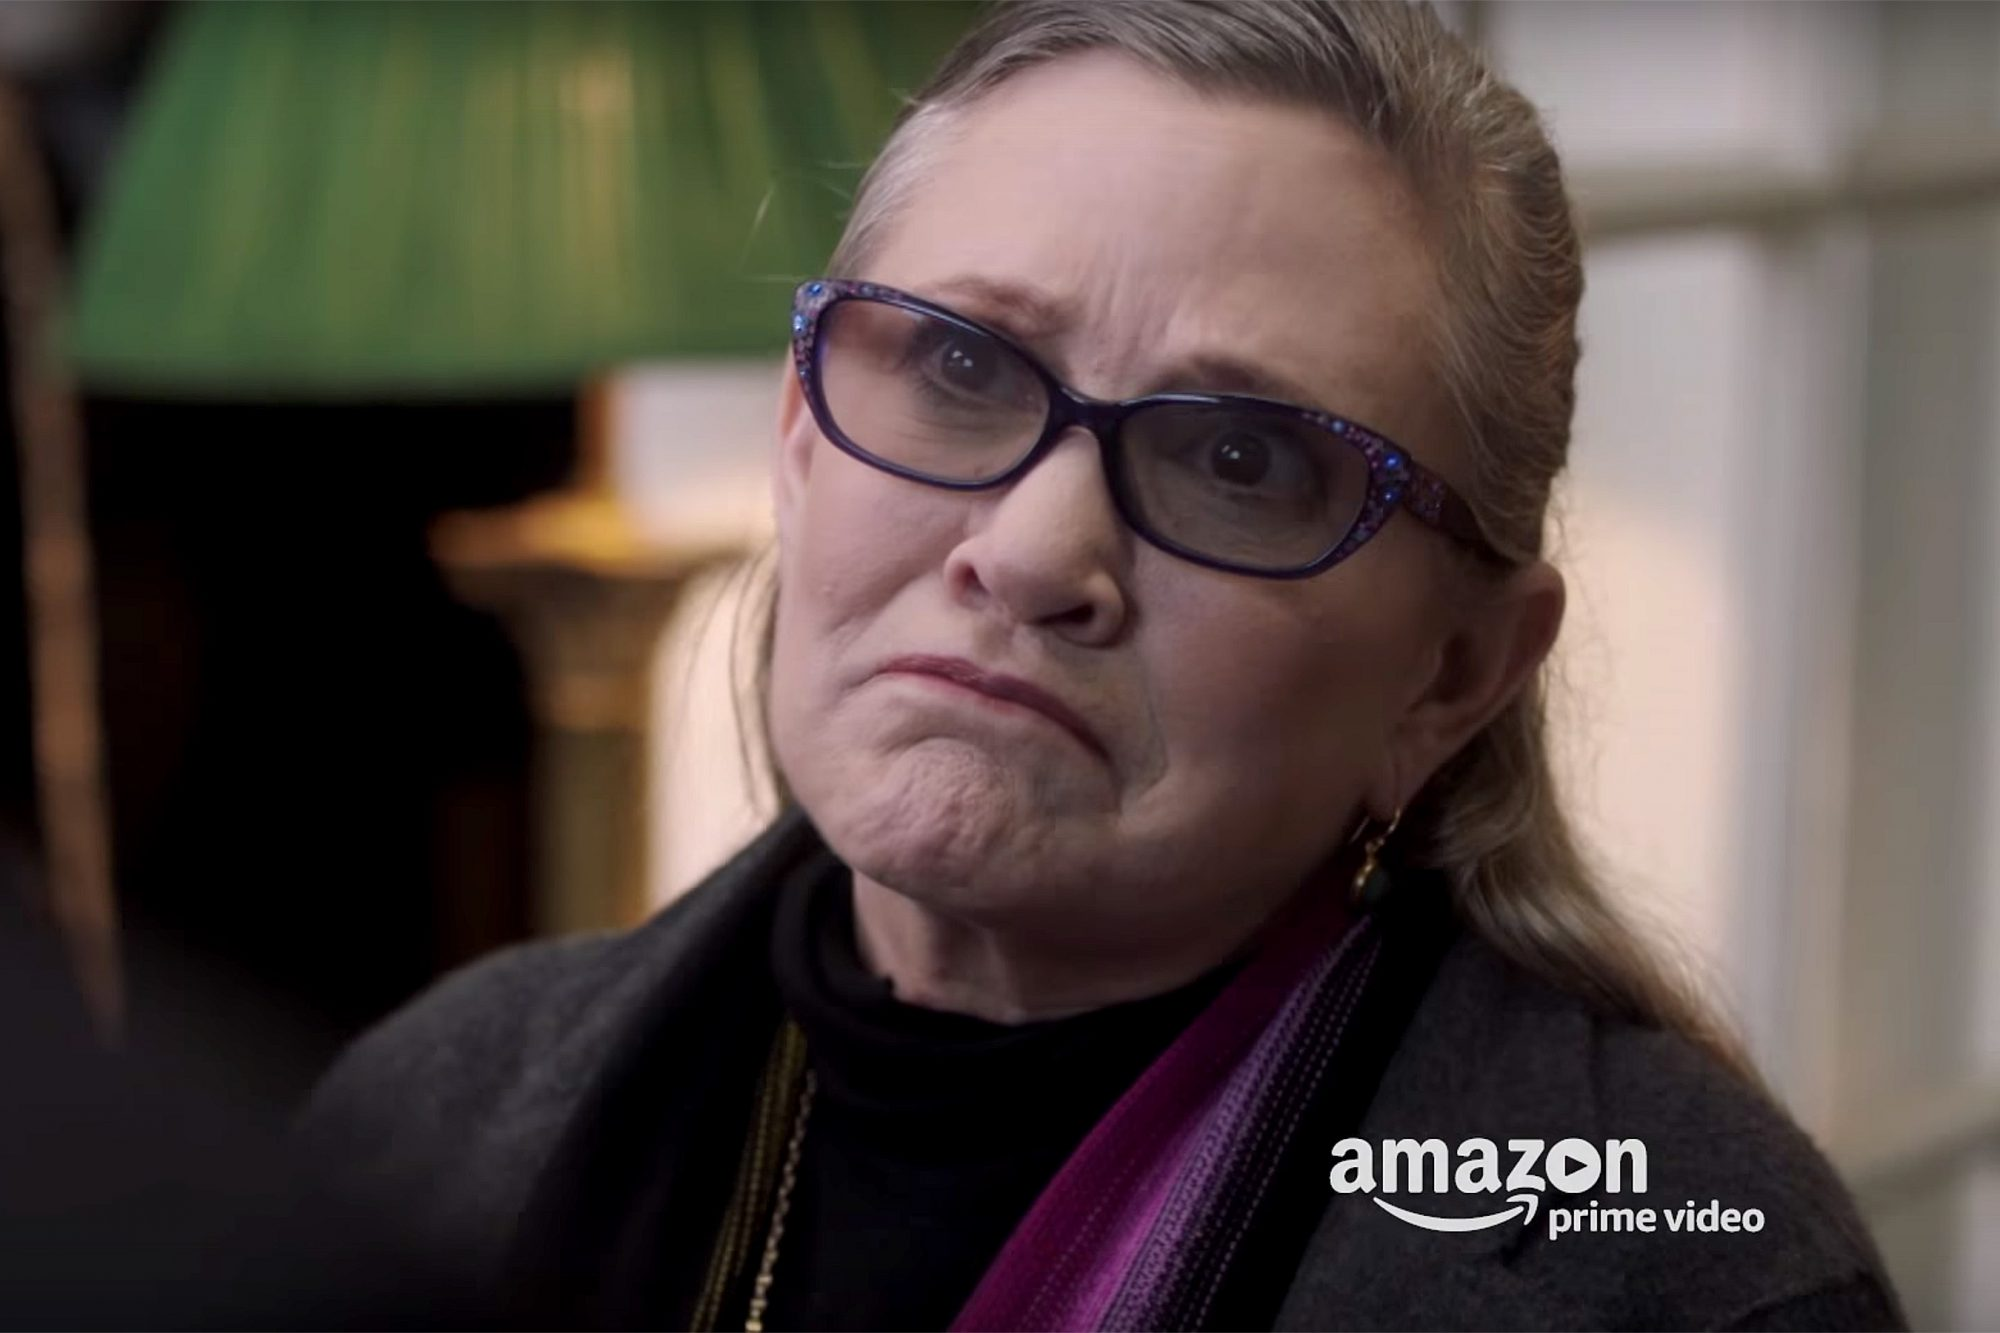 Carrie Fisher in Catastrophe Season 3